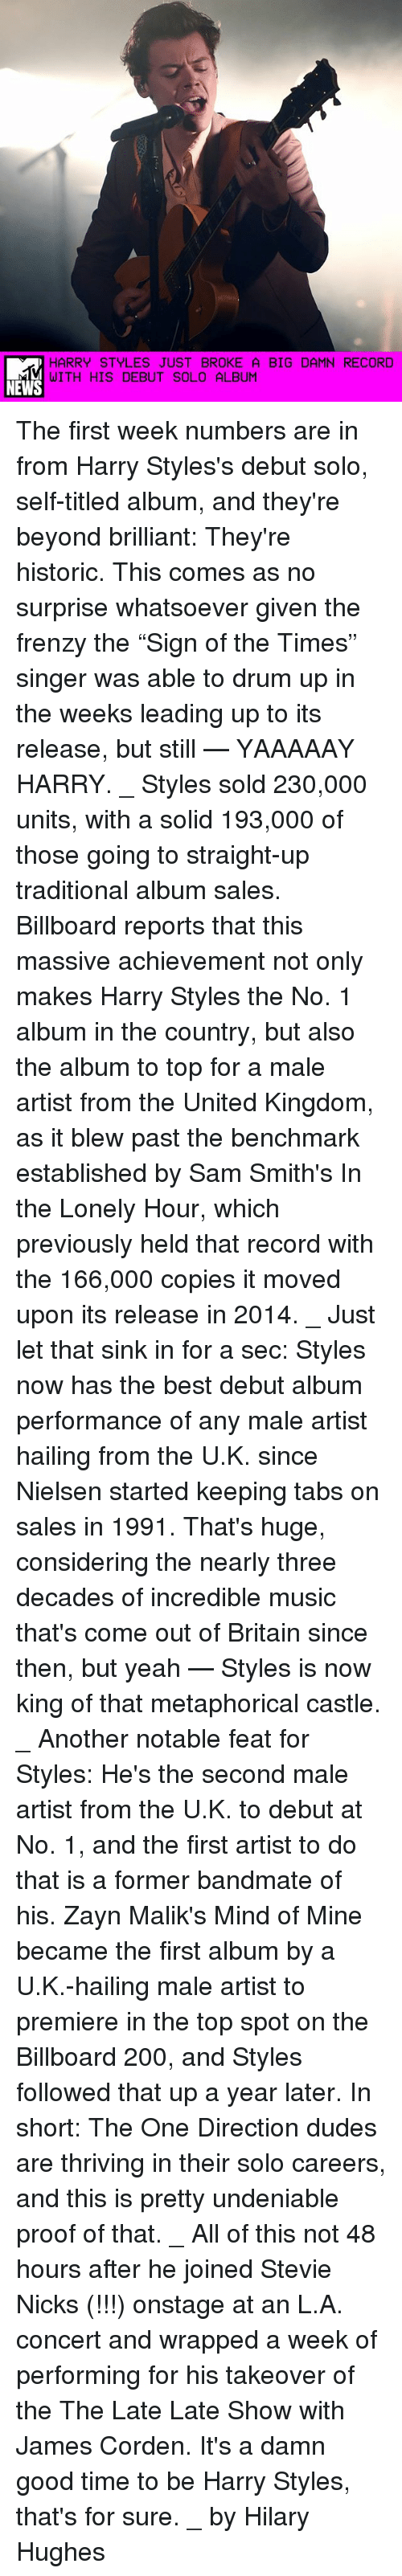 """drumming: HARRY STYLES JUST BROKE A BIG DAMN RECORD  WITH HIS DEBUT SOLO ALBUM  NEWS The first week numbers are in from Harry Styles's debut solo, self-titled album, and they're beyond brilliant: They're historic. This comes as no surprise whatsoever given the frenzy the """"Sign of the Times"""" singer was able to drum up in the weeks leading up to its release, but still — YAAAAAY HARRY. _ Styles sold 230,000 units, with a solid 193,000 of those going to straight-up traditional album sales. Billboard reports that this massive achievement not only makes Harry Styles the No. 1 album in the country, but also the album to top for a male artist from the United Kingdom, as it blew past the benchmark established by Sam Smith's In the Lonely Hour, which previously held that record with the 166,000 copies it moved upon its release in 2014. _ Just let that sink in for a sec: Styles now has the best debut album performance of any male artist hailing from the U.K. since Nielsen started keeping tabs on sales in 1991. That's huge, considering the nearly three decades of incredible music that's come out of Britain since then, but yeah — Styles is now king of that metaphorical castle. _ Another notable feat for Styles: He's the second male artist from the U.K. to debut at No. 1, and the first artist to do that is a former bandmate of his. Zayn Malik's Mind of Mine became the first album by a U.K.-hailing male artist to premiere in the top spot on the Billboard 200, and Styles followed that up a year later. In short: The One Direction dudes are thriving in their solo careers, and this is pretty undeniable proof of that. _ All of this not 48 hours after he joined Stevie Nicks (!!!) onstage at an L.A. concert and wrapped a week of performing for his takeover of the The Late Late Show with James Corden. It's a damn good time to be Harry Styles, that's for sure. _ by Hilary Hughes"""